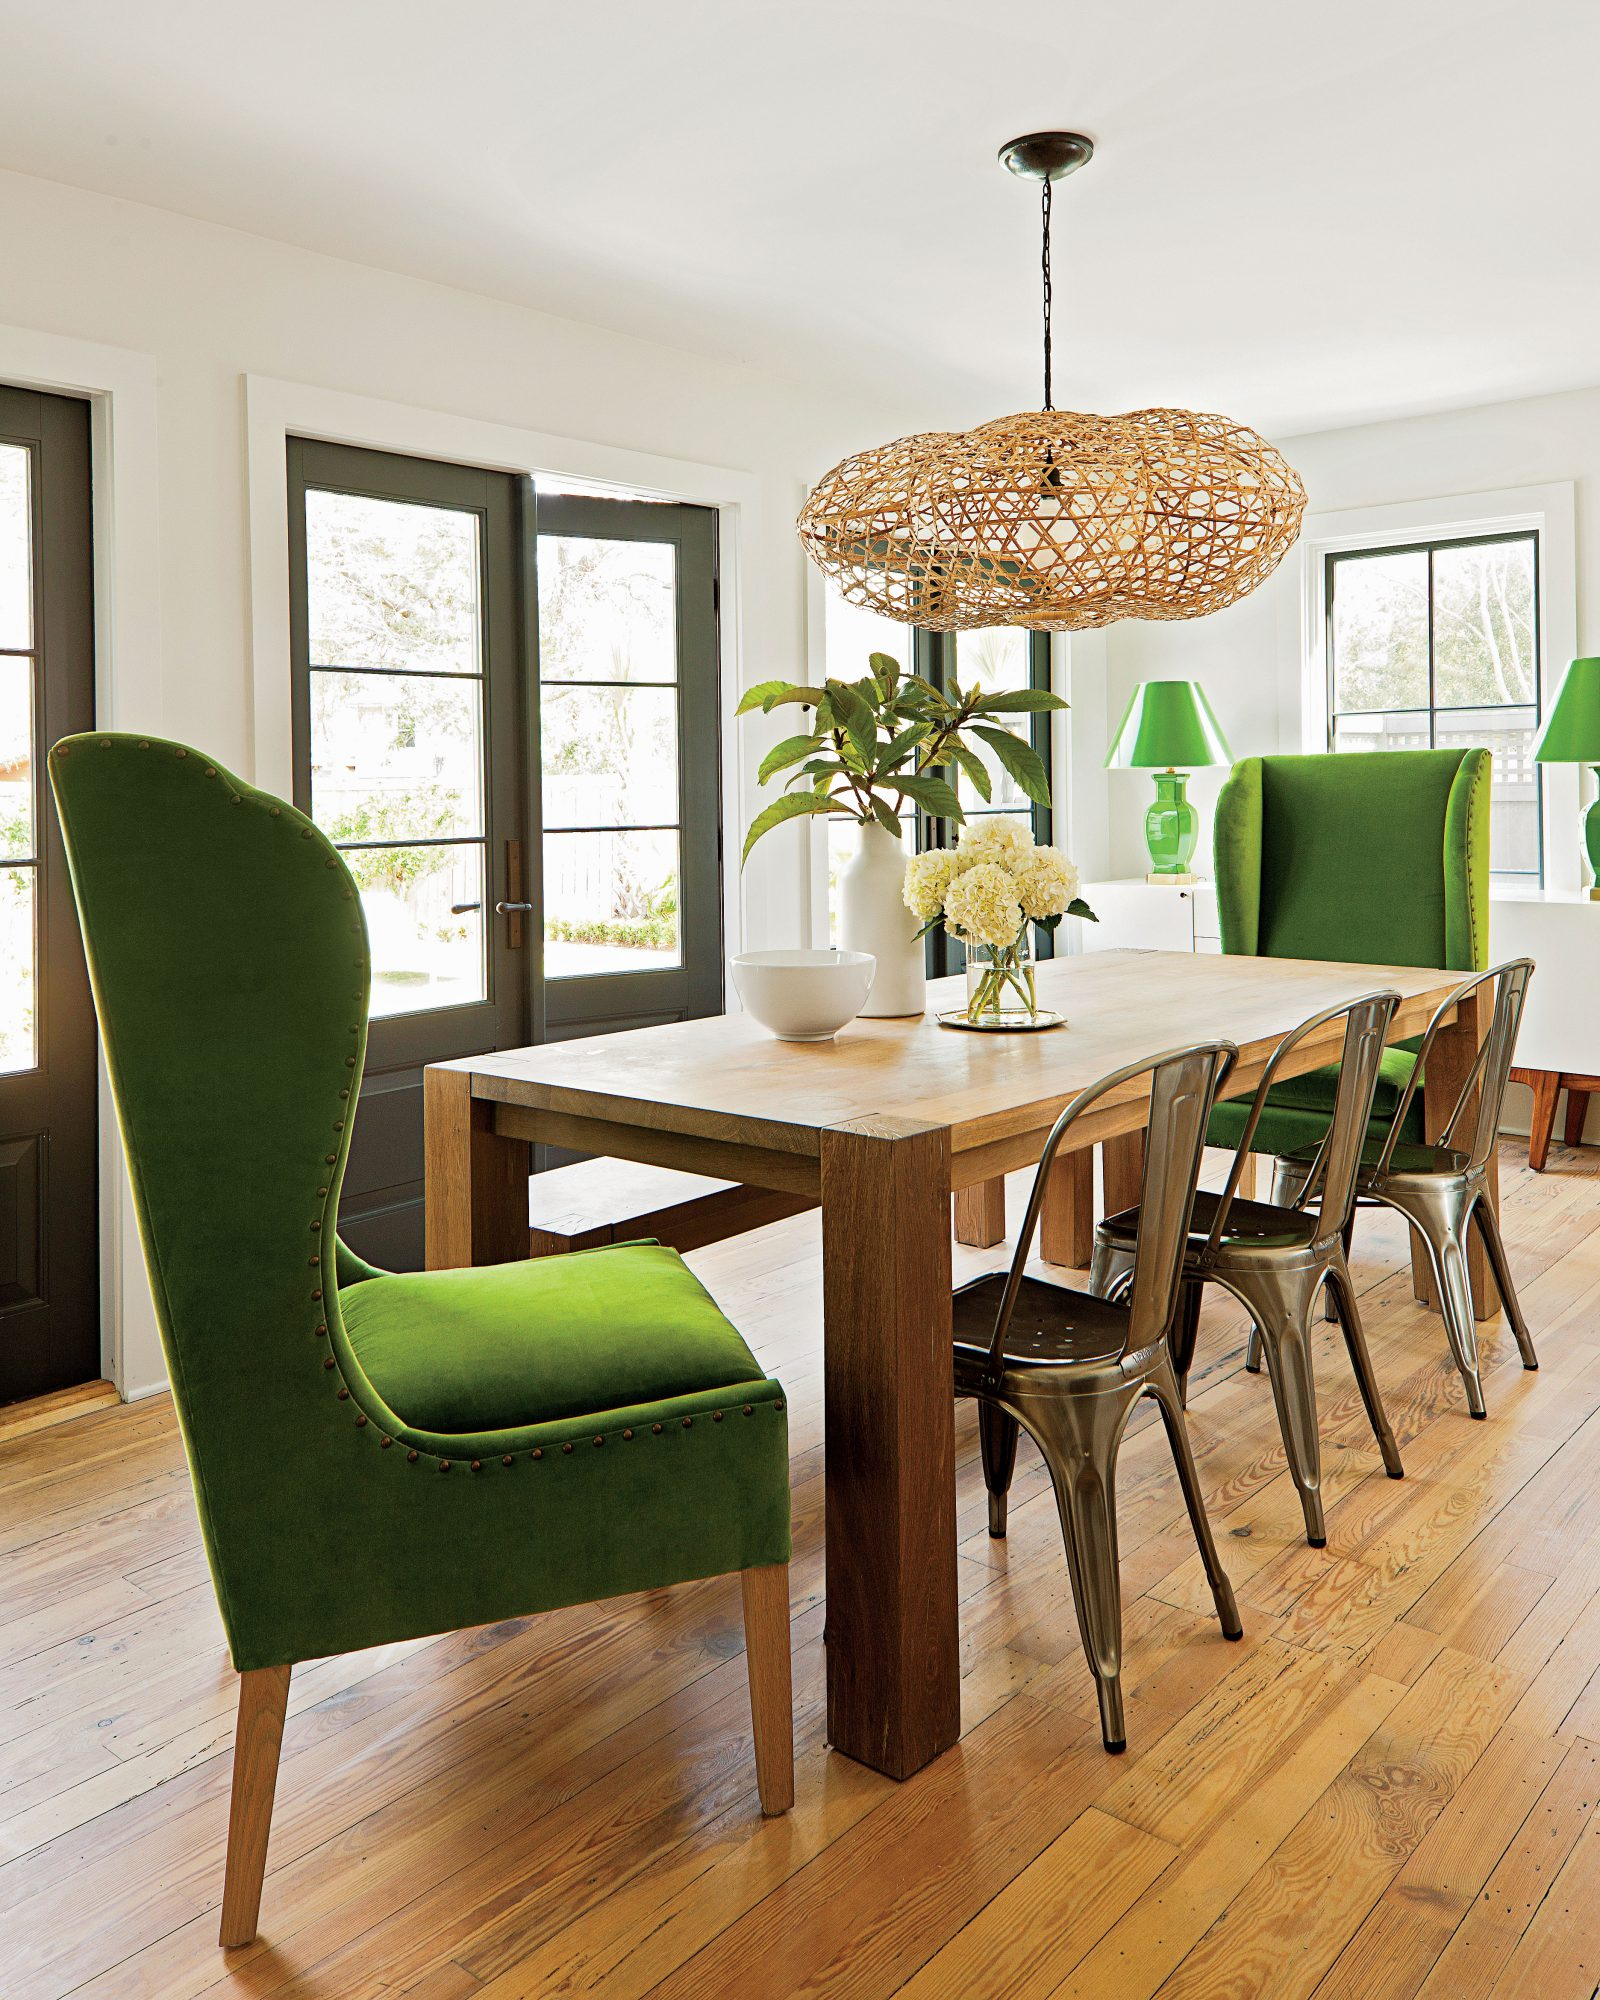 Swell Dazzling Dining Room Before And After Makeovers Spiritservingveterans Wood Chair Design Ideas Spiritservingveteransorg